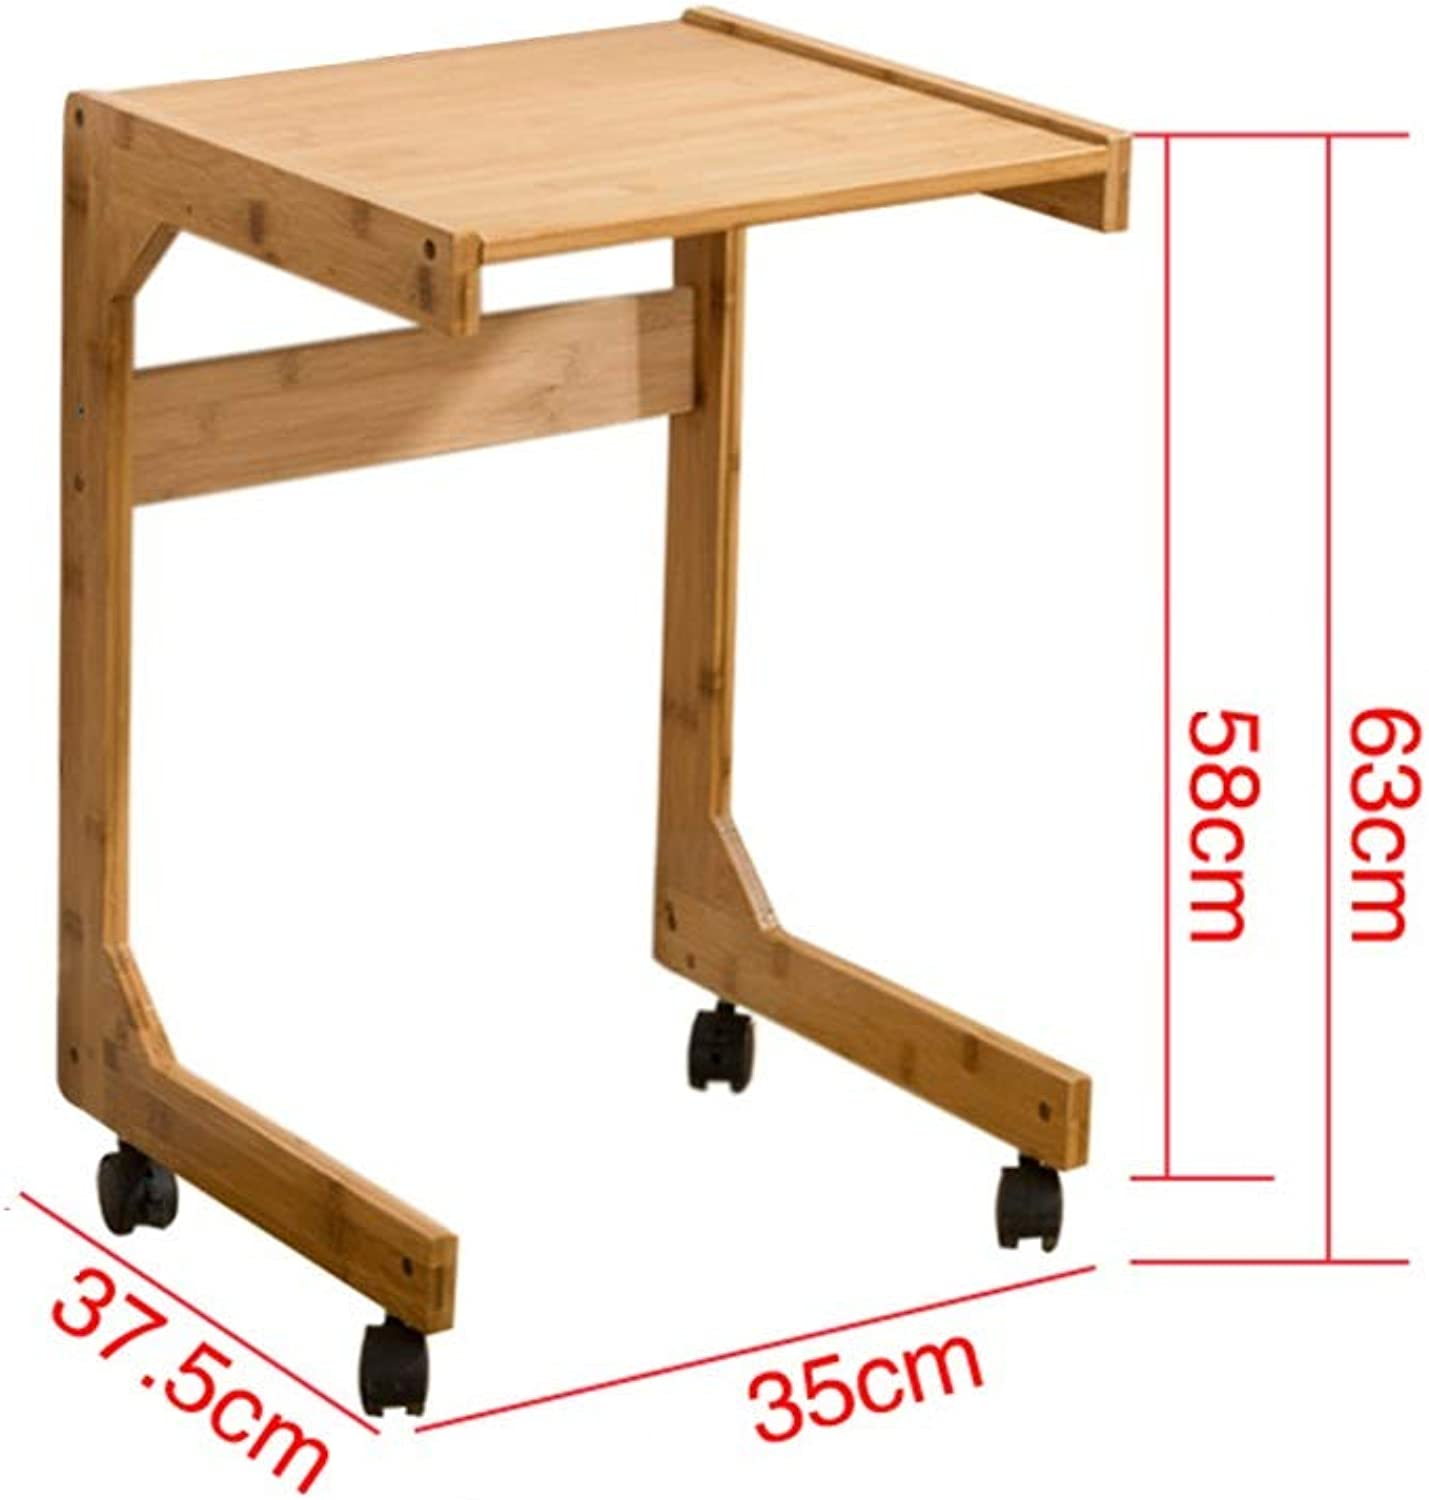 ZHAOYONGLI Tables,Coffee Tables Side Table Living Room End Table Coffee Table Laptop Stand Bedside Sofa Couch Nursing Table Bamboo (color   Bamboo Single Layer, Size   30  36.5  63cm)